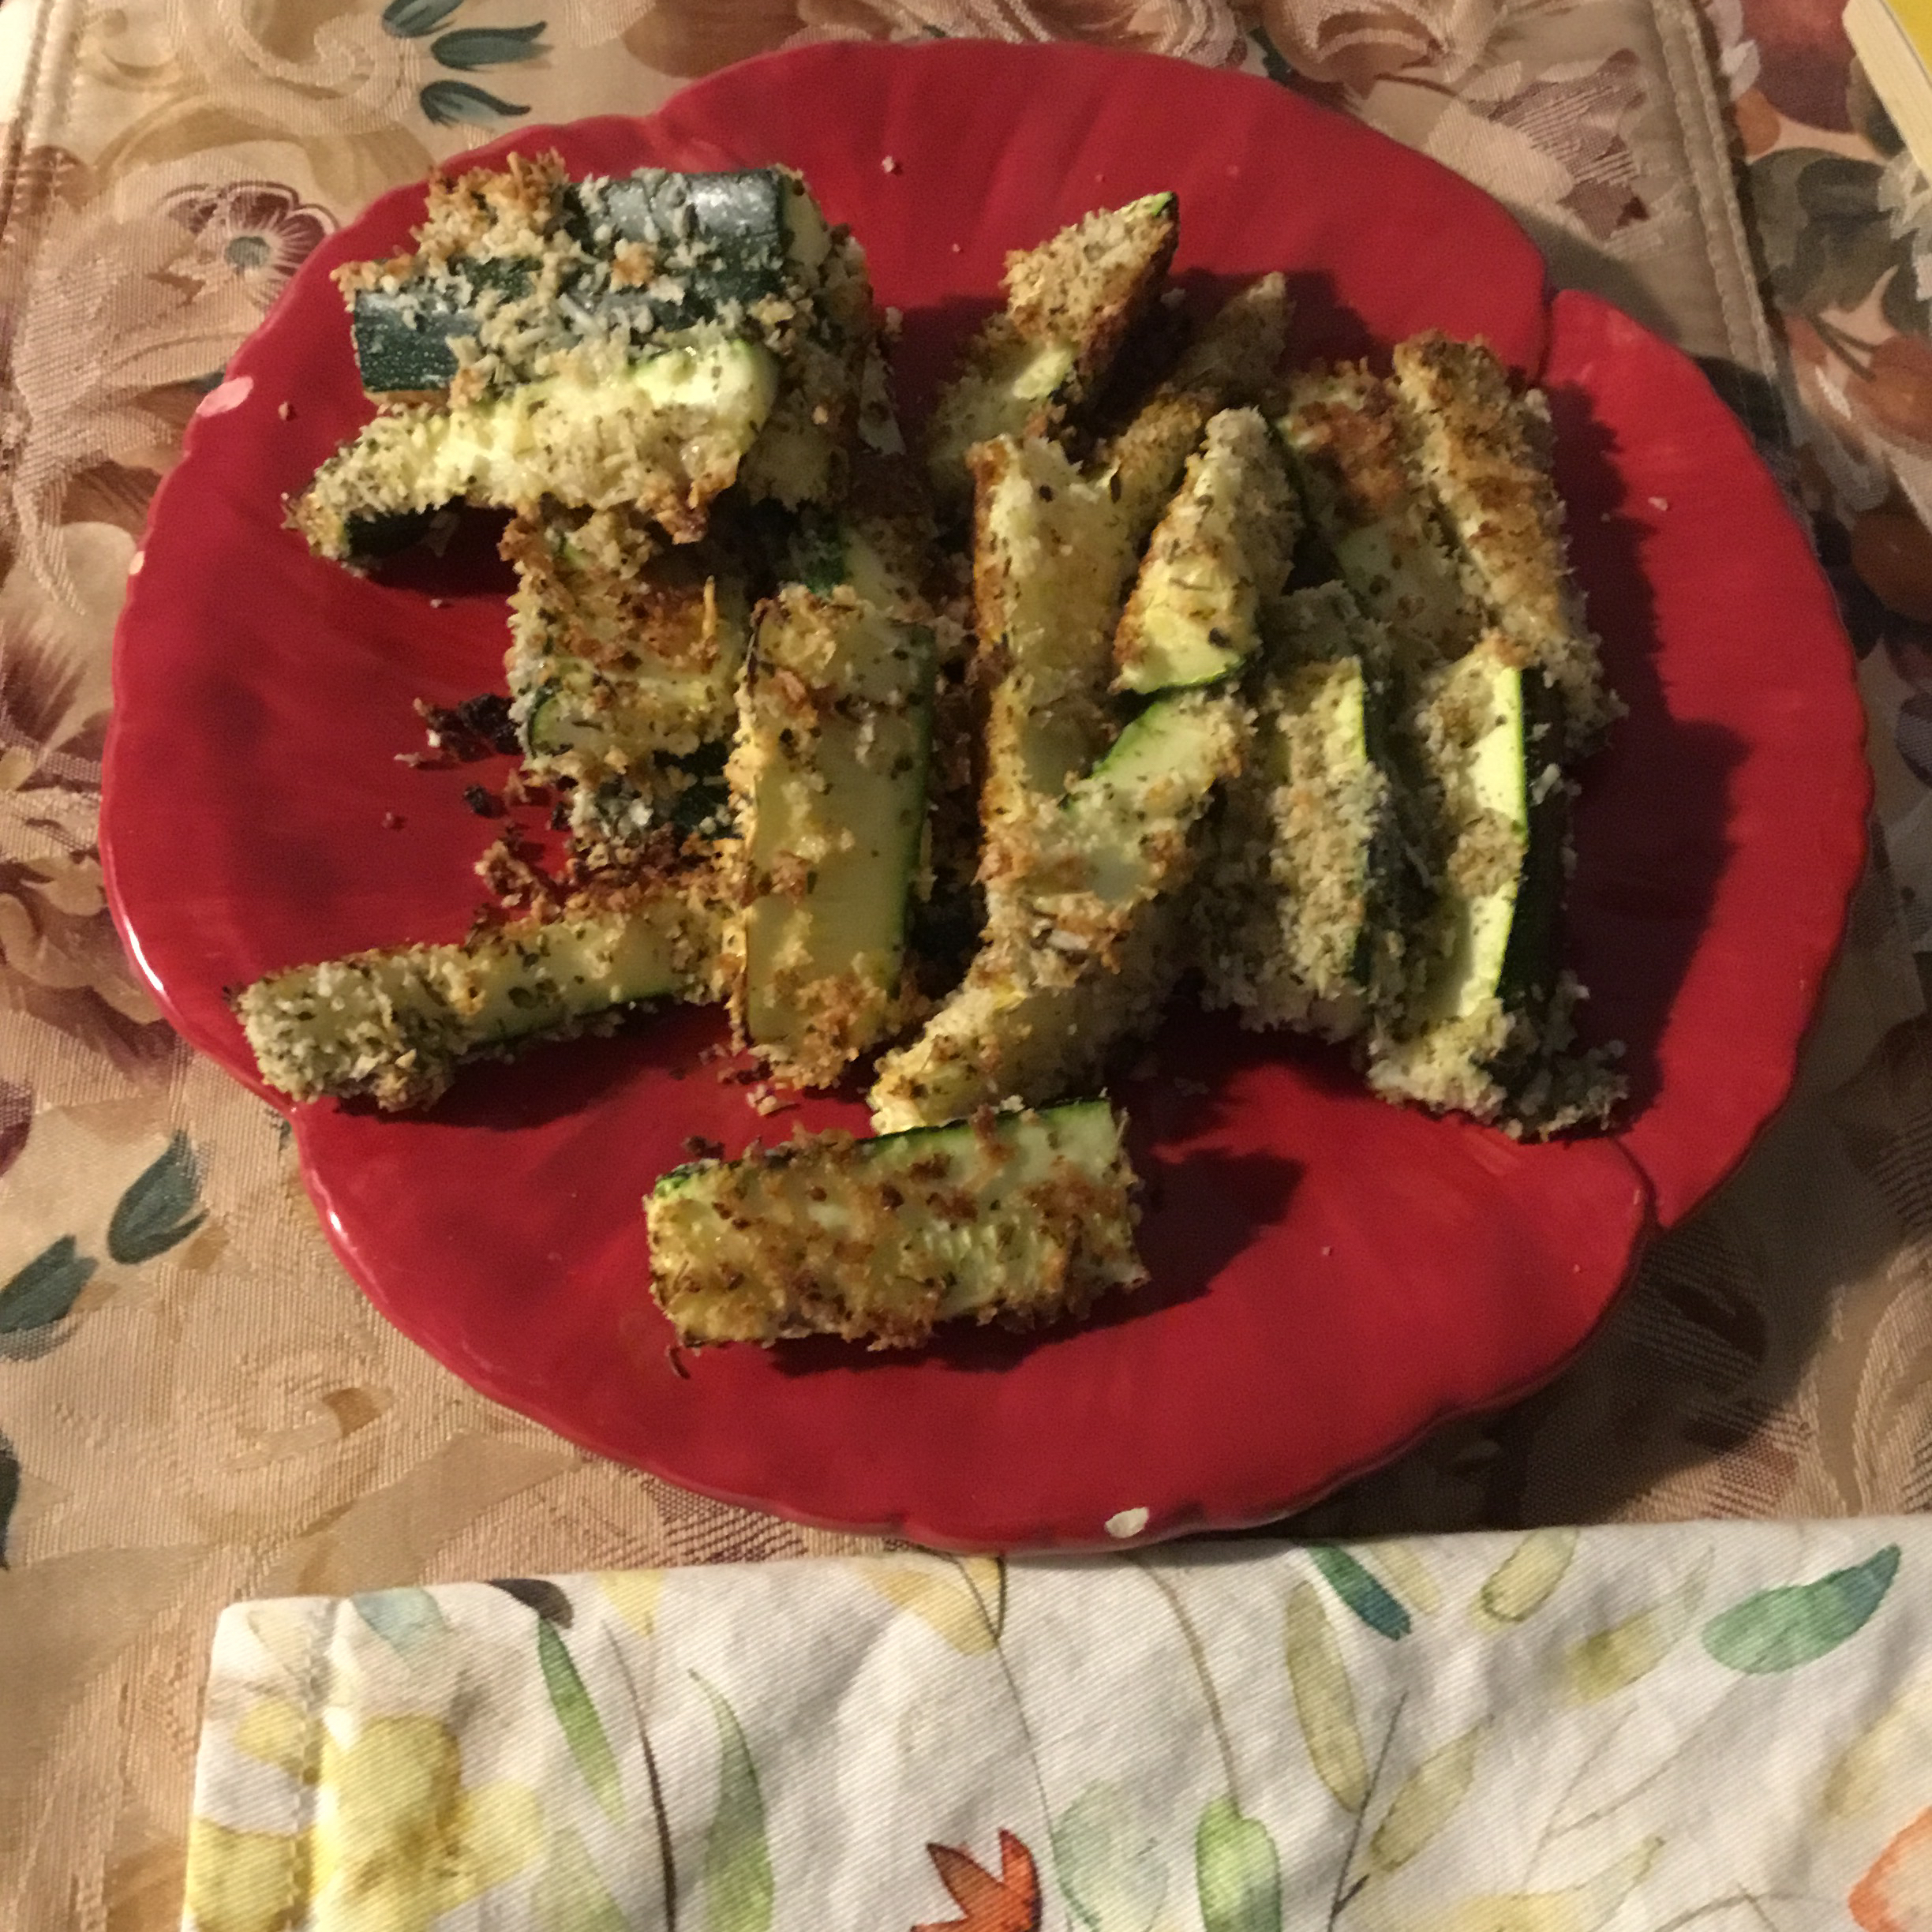 Baked Panko-Breaded Zucchini Fries Linda Marie Smith